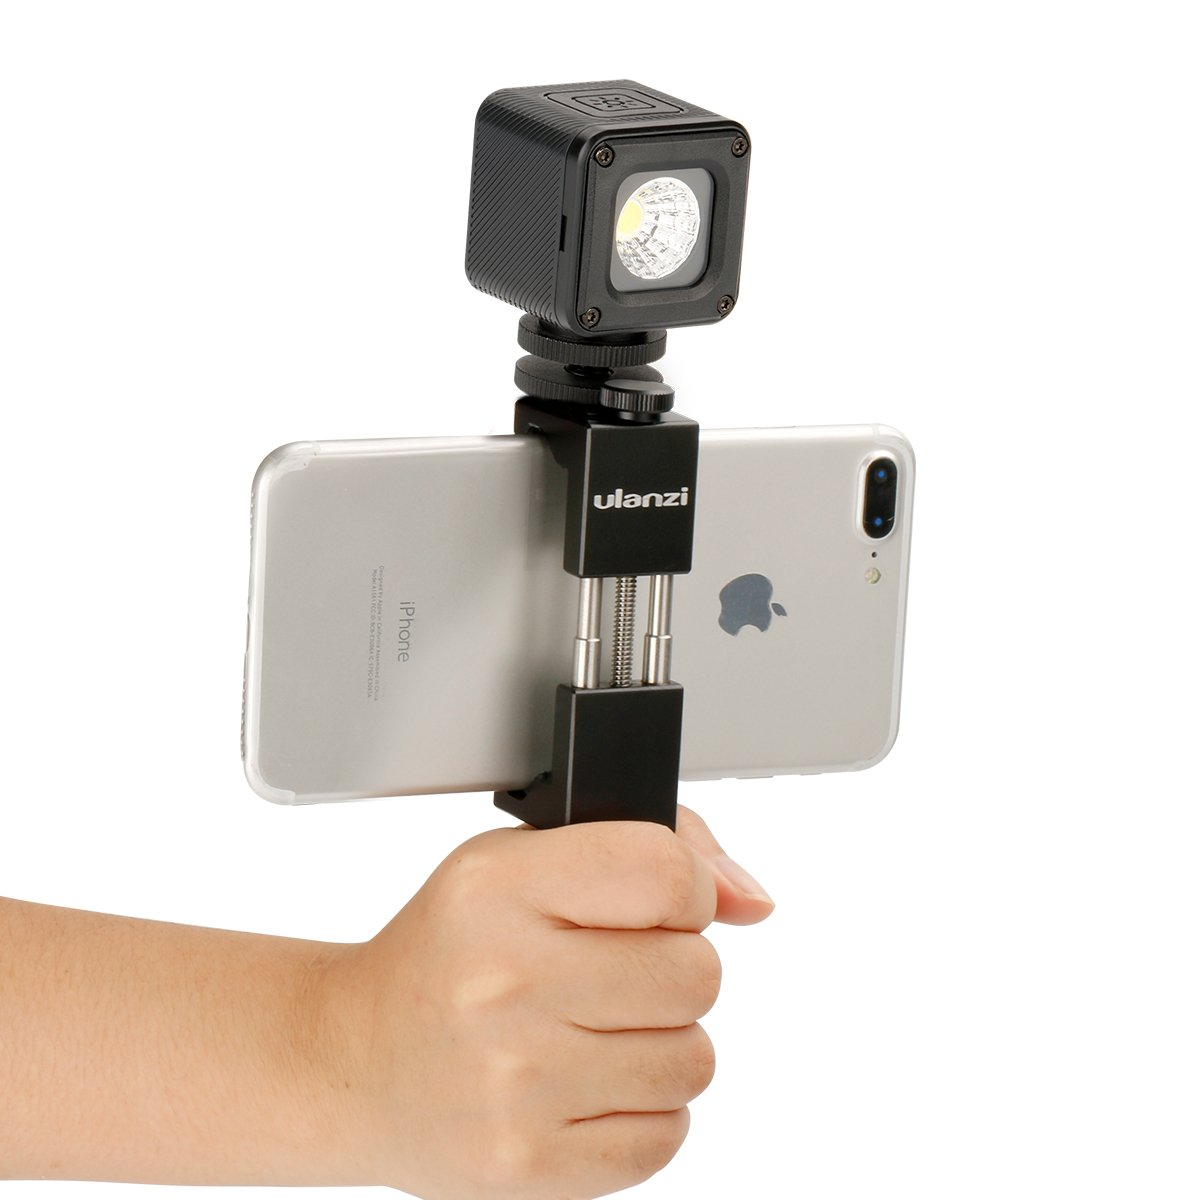 compatible with DJI Osmo Mobile 2 Zhiyun Smooth 4 Smartphone Gimbal Ulanzi Mini LED Video Light on Camera Rechargeable Photo Light with 12 Color Gels for Nikon Canon Sony DSLR